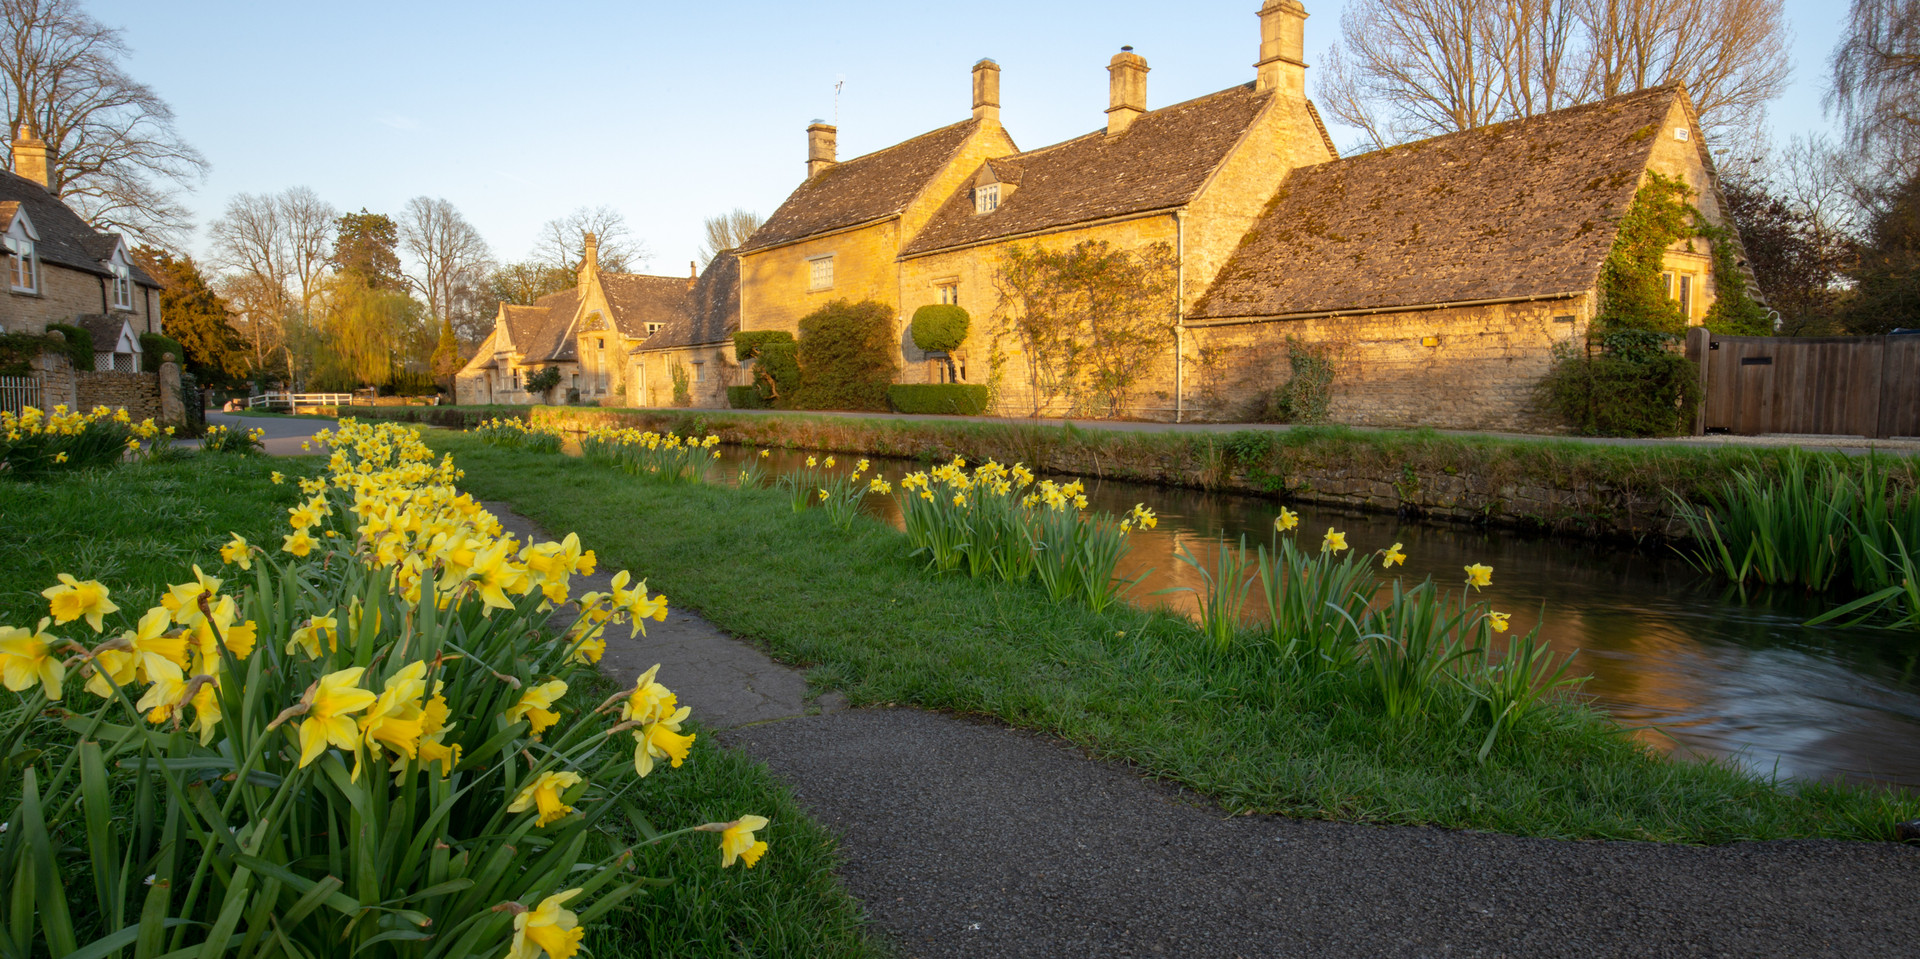 Cotswolds Photography Workshops by Willi